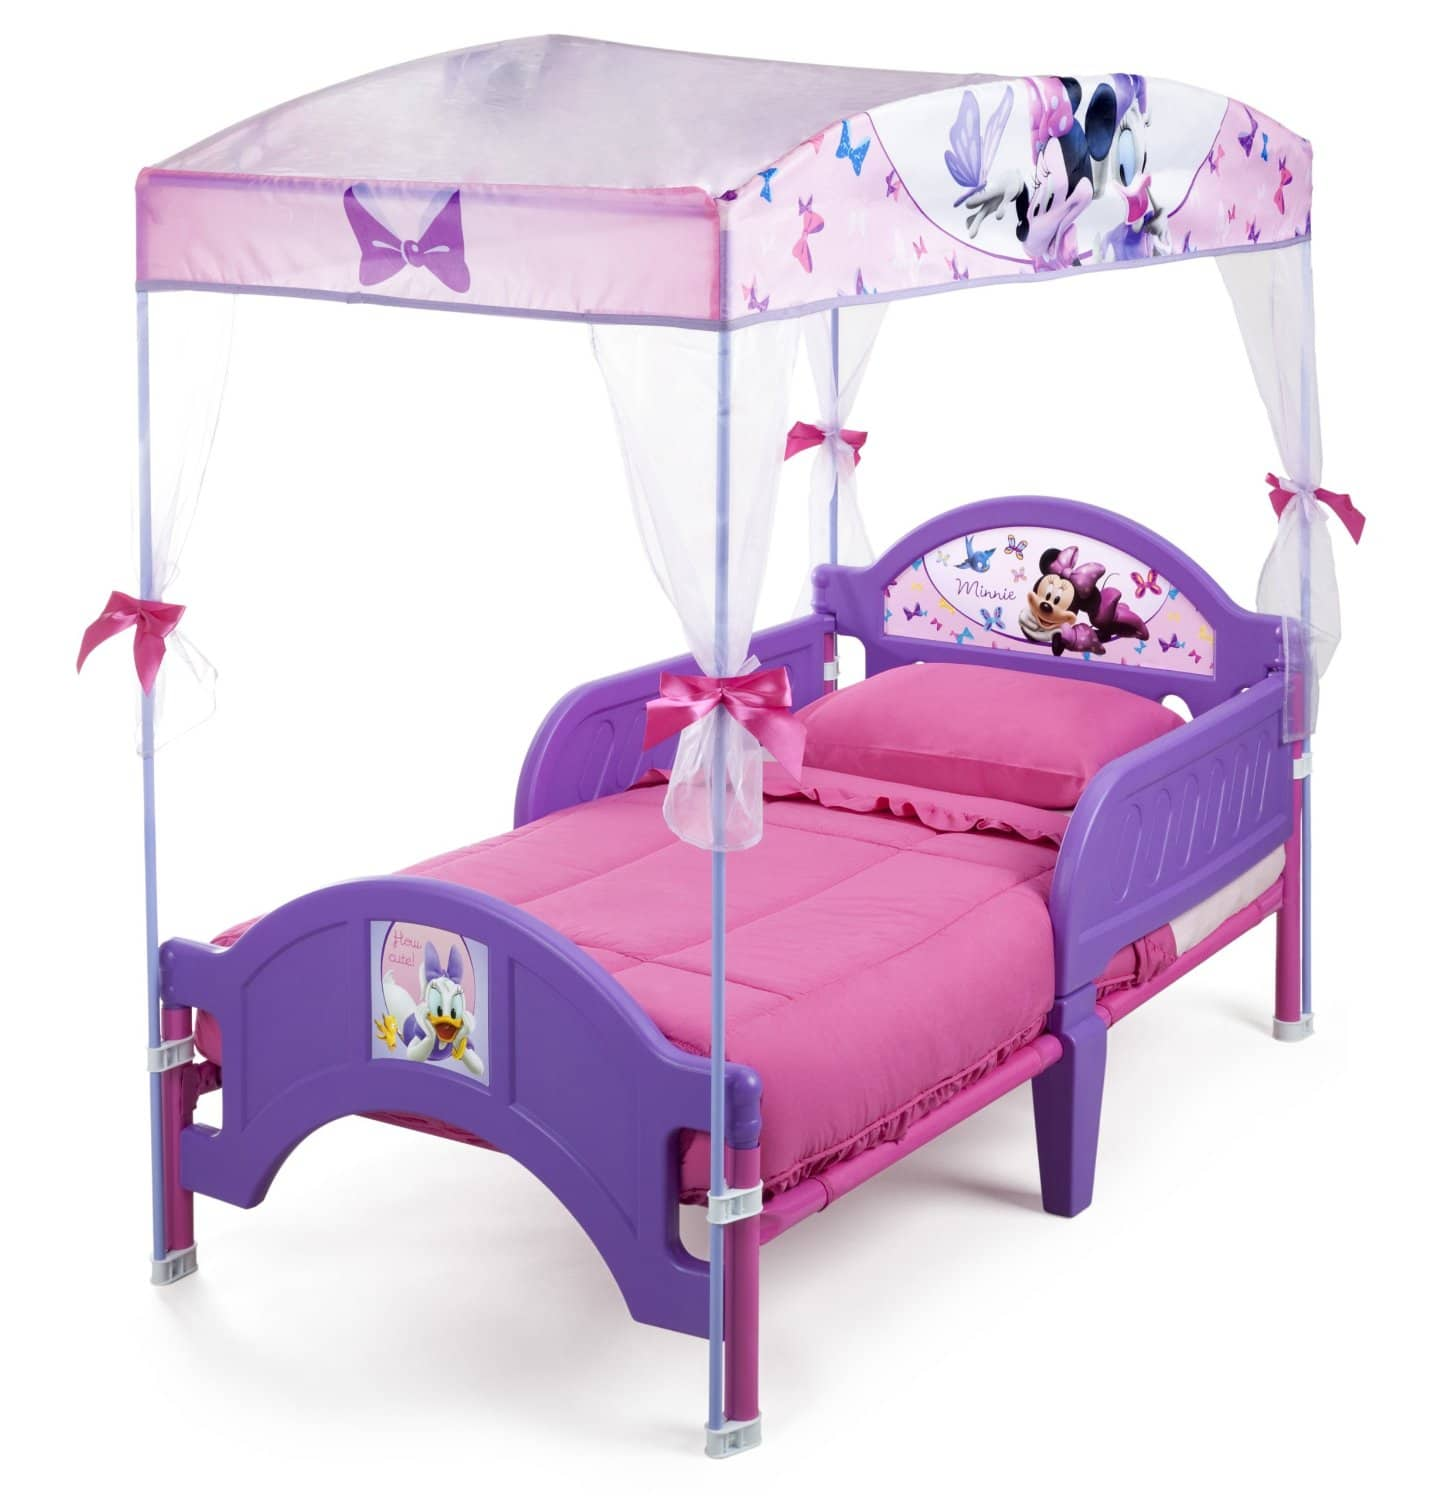 toddler girl bed top 10 best toddler beds in 2015 reviews 11374